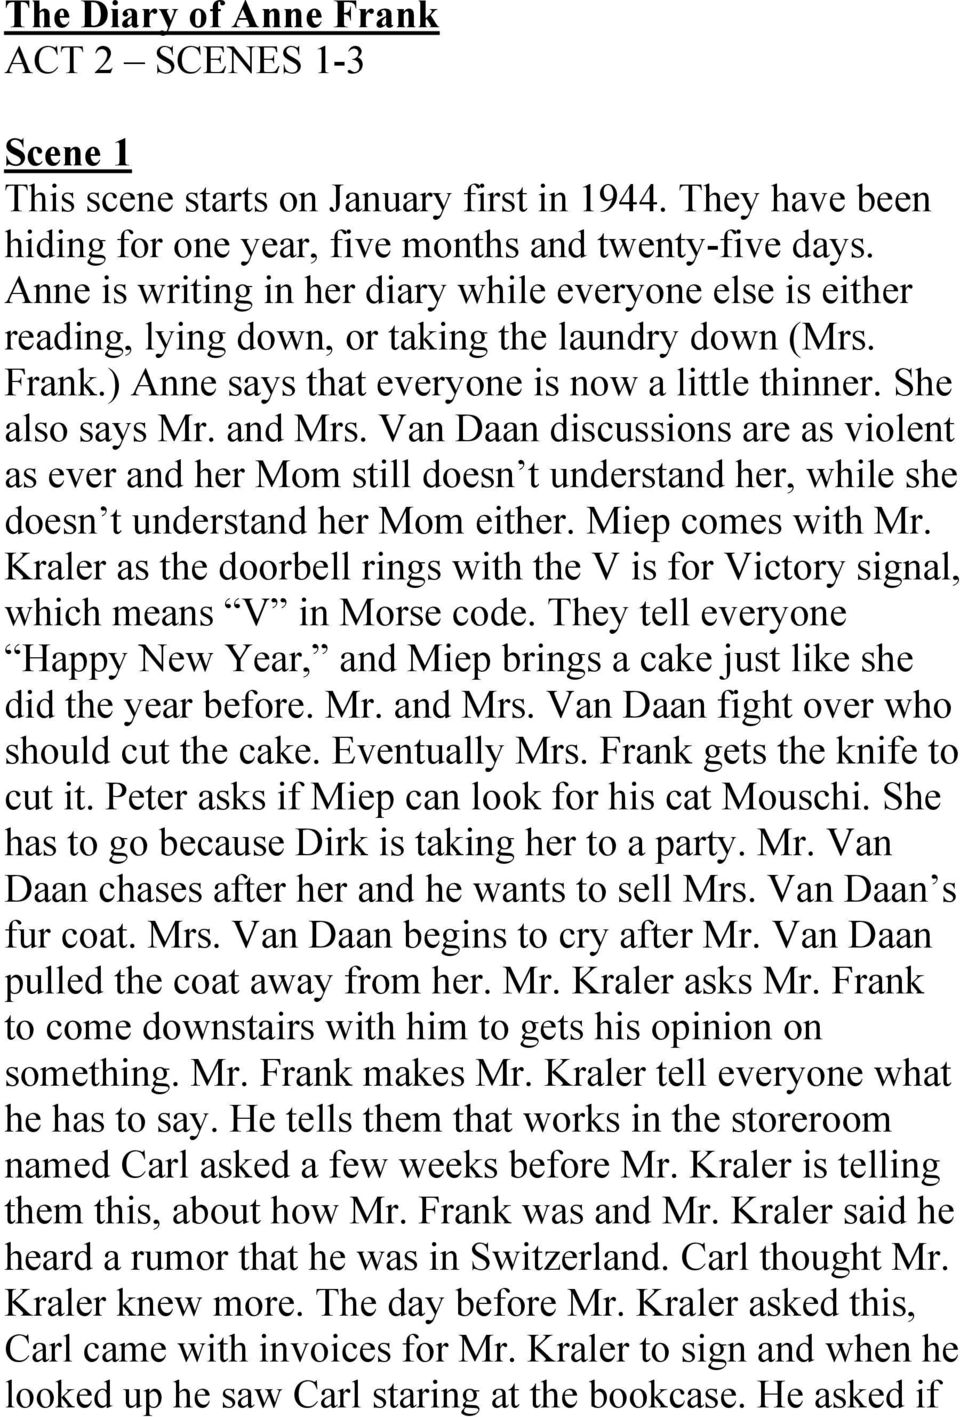 Anne Frank Play Pdf Act 2